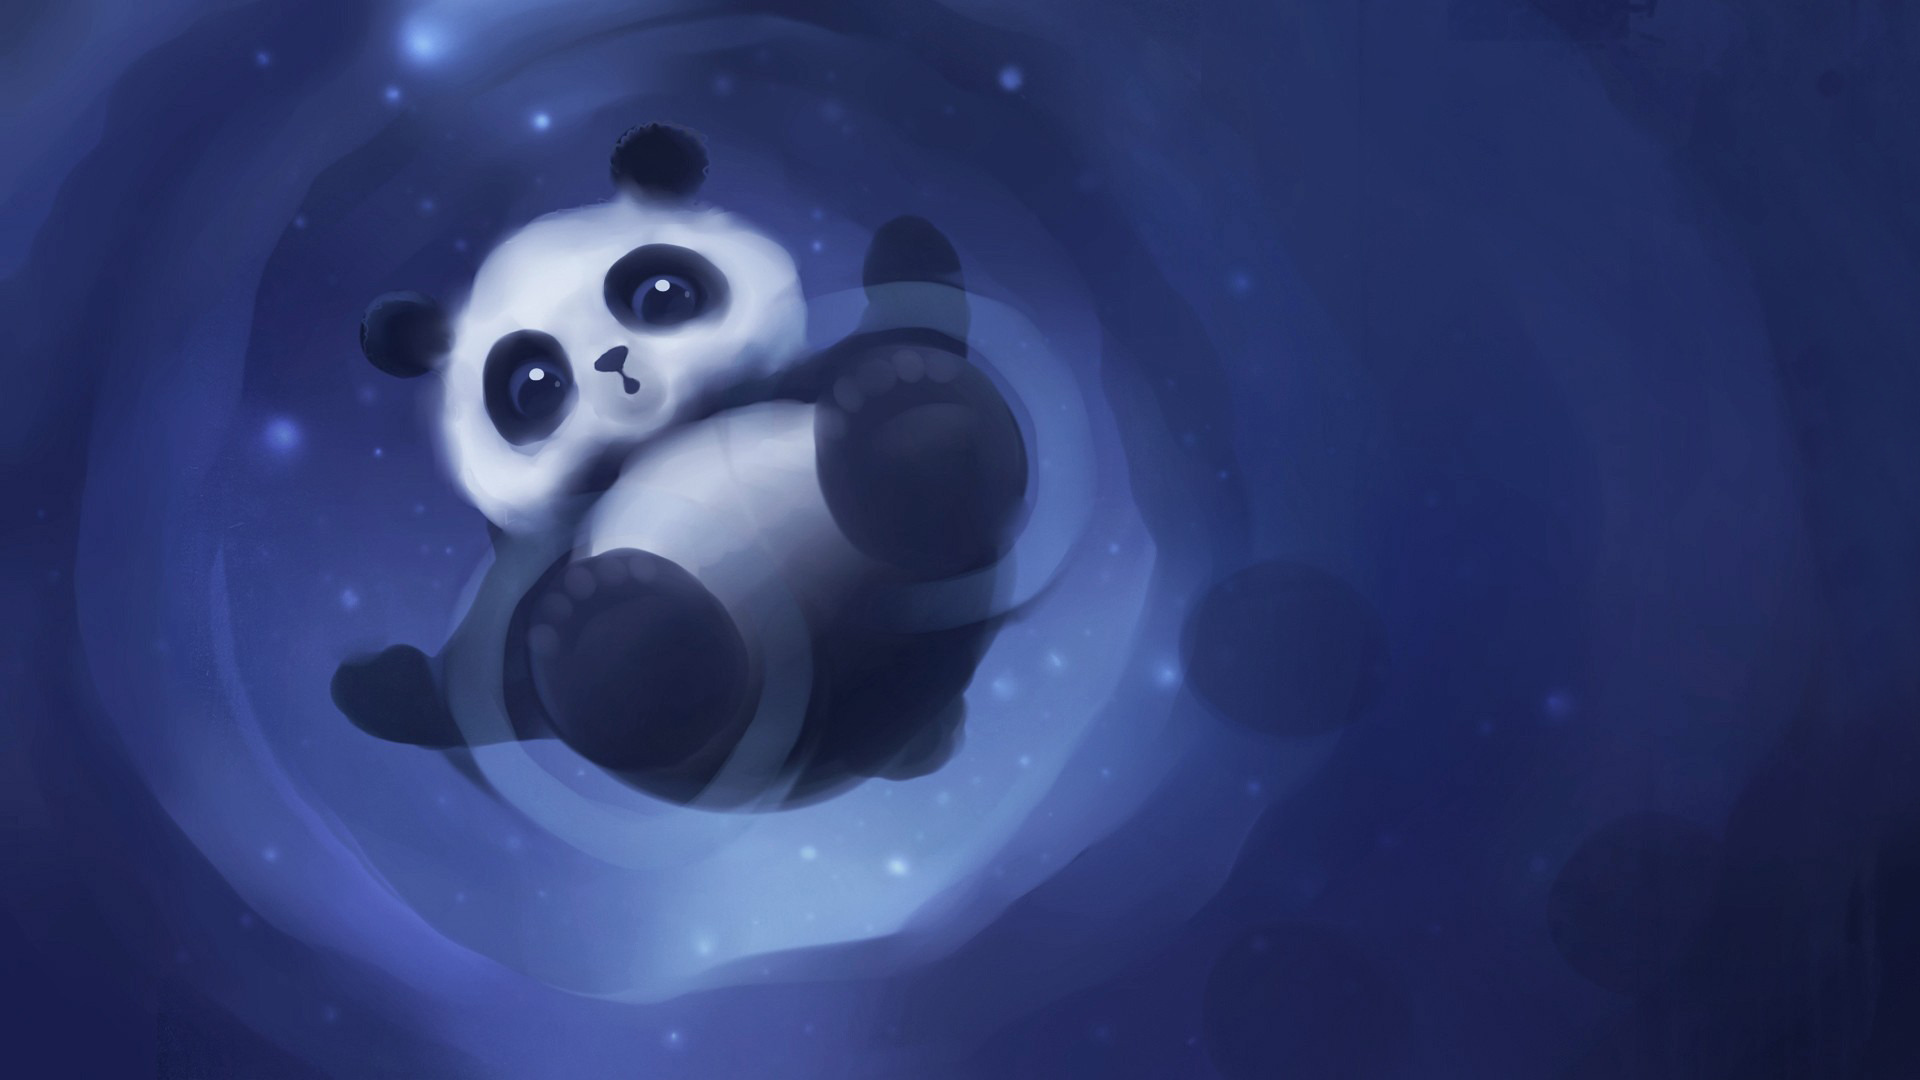 Best 47 Panda Wallpaper On Hipwallpaper Cute Panda Wallpaper